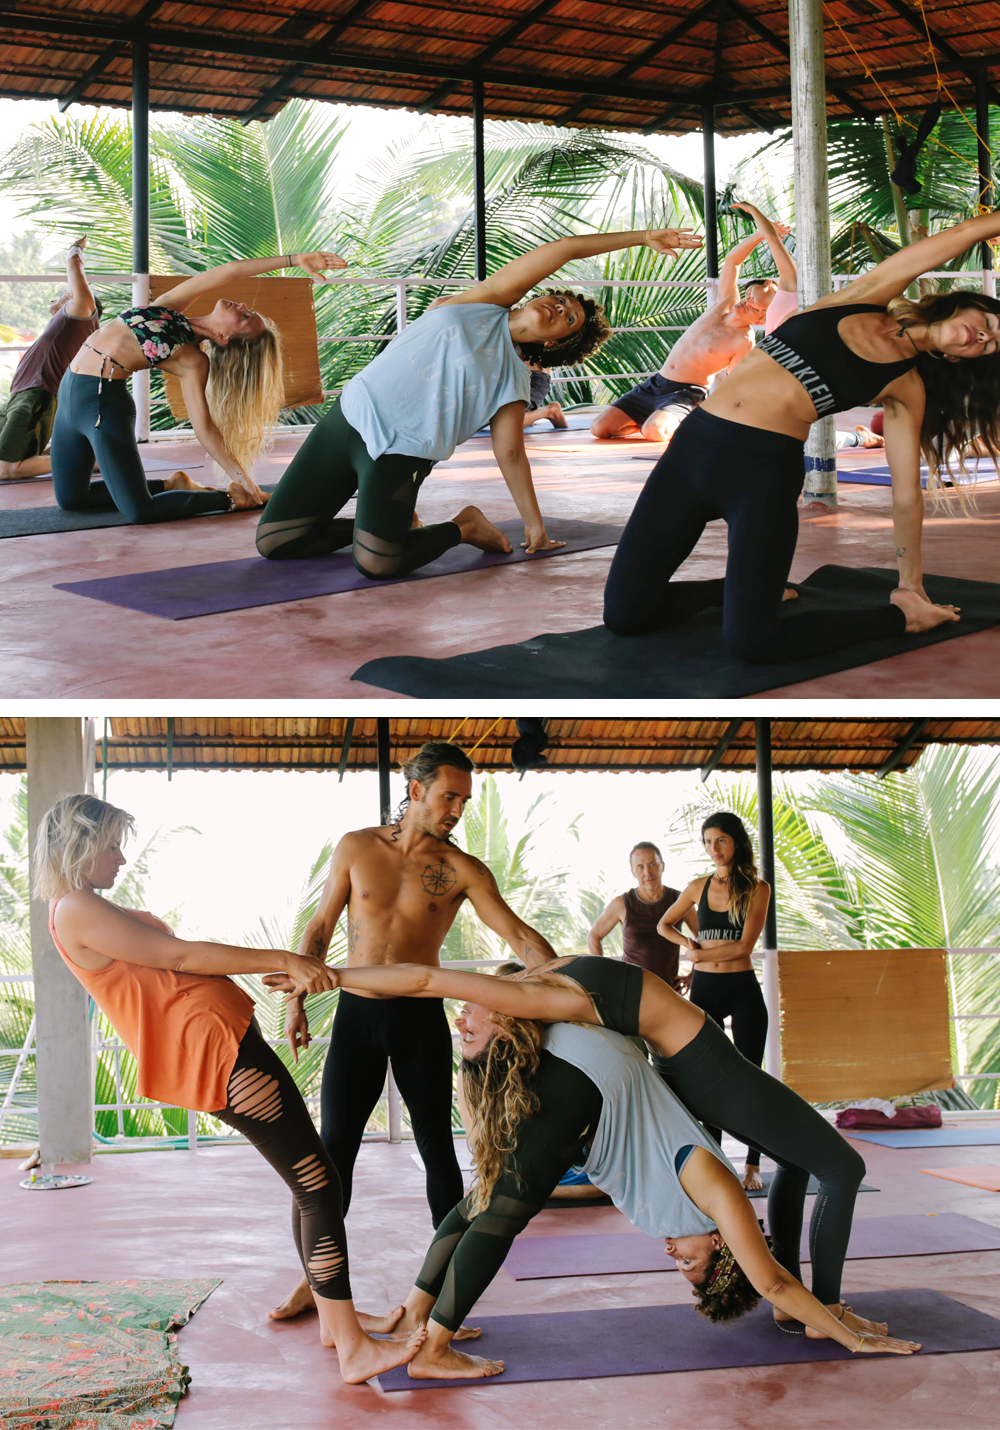 Goa Yoga Retreat les Amazones Parisiennes exochic